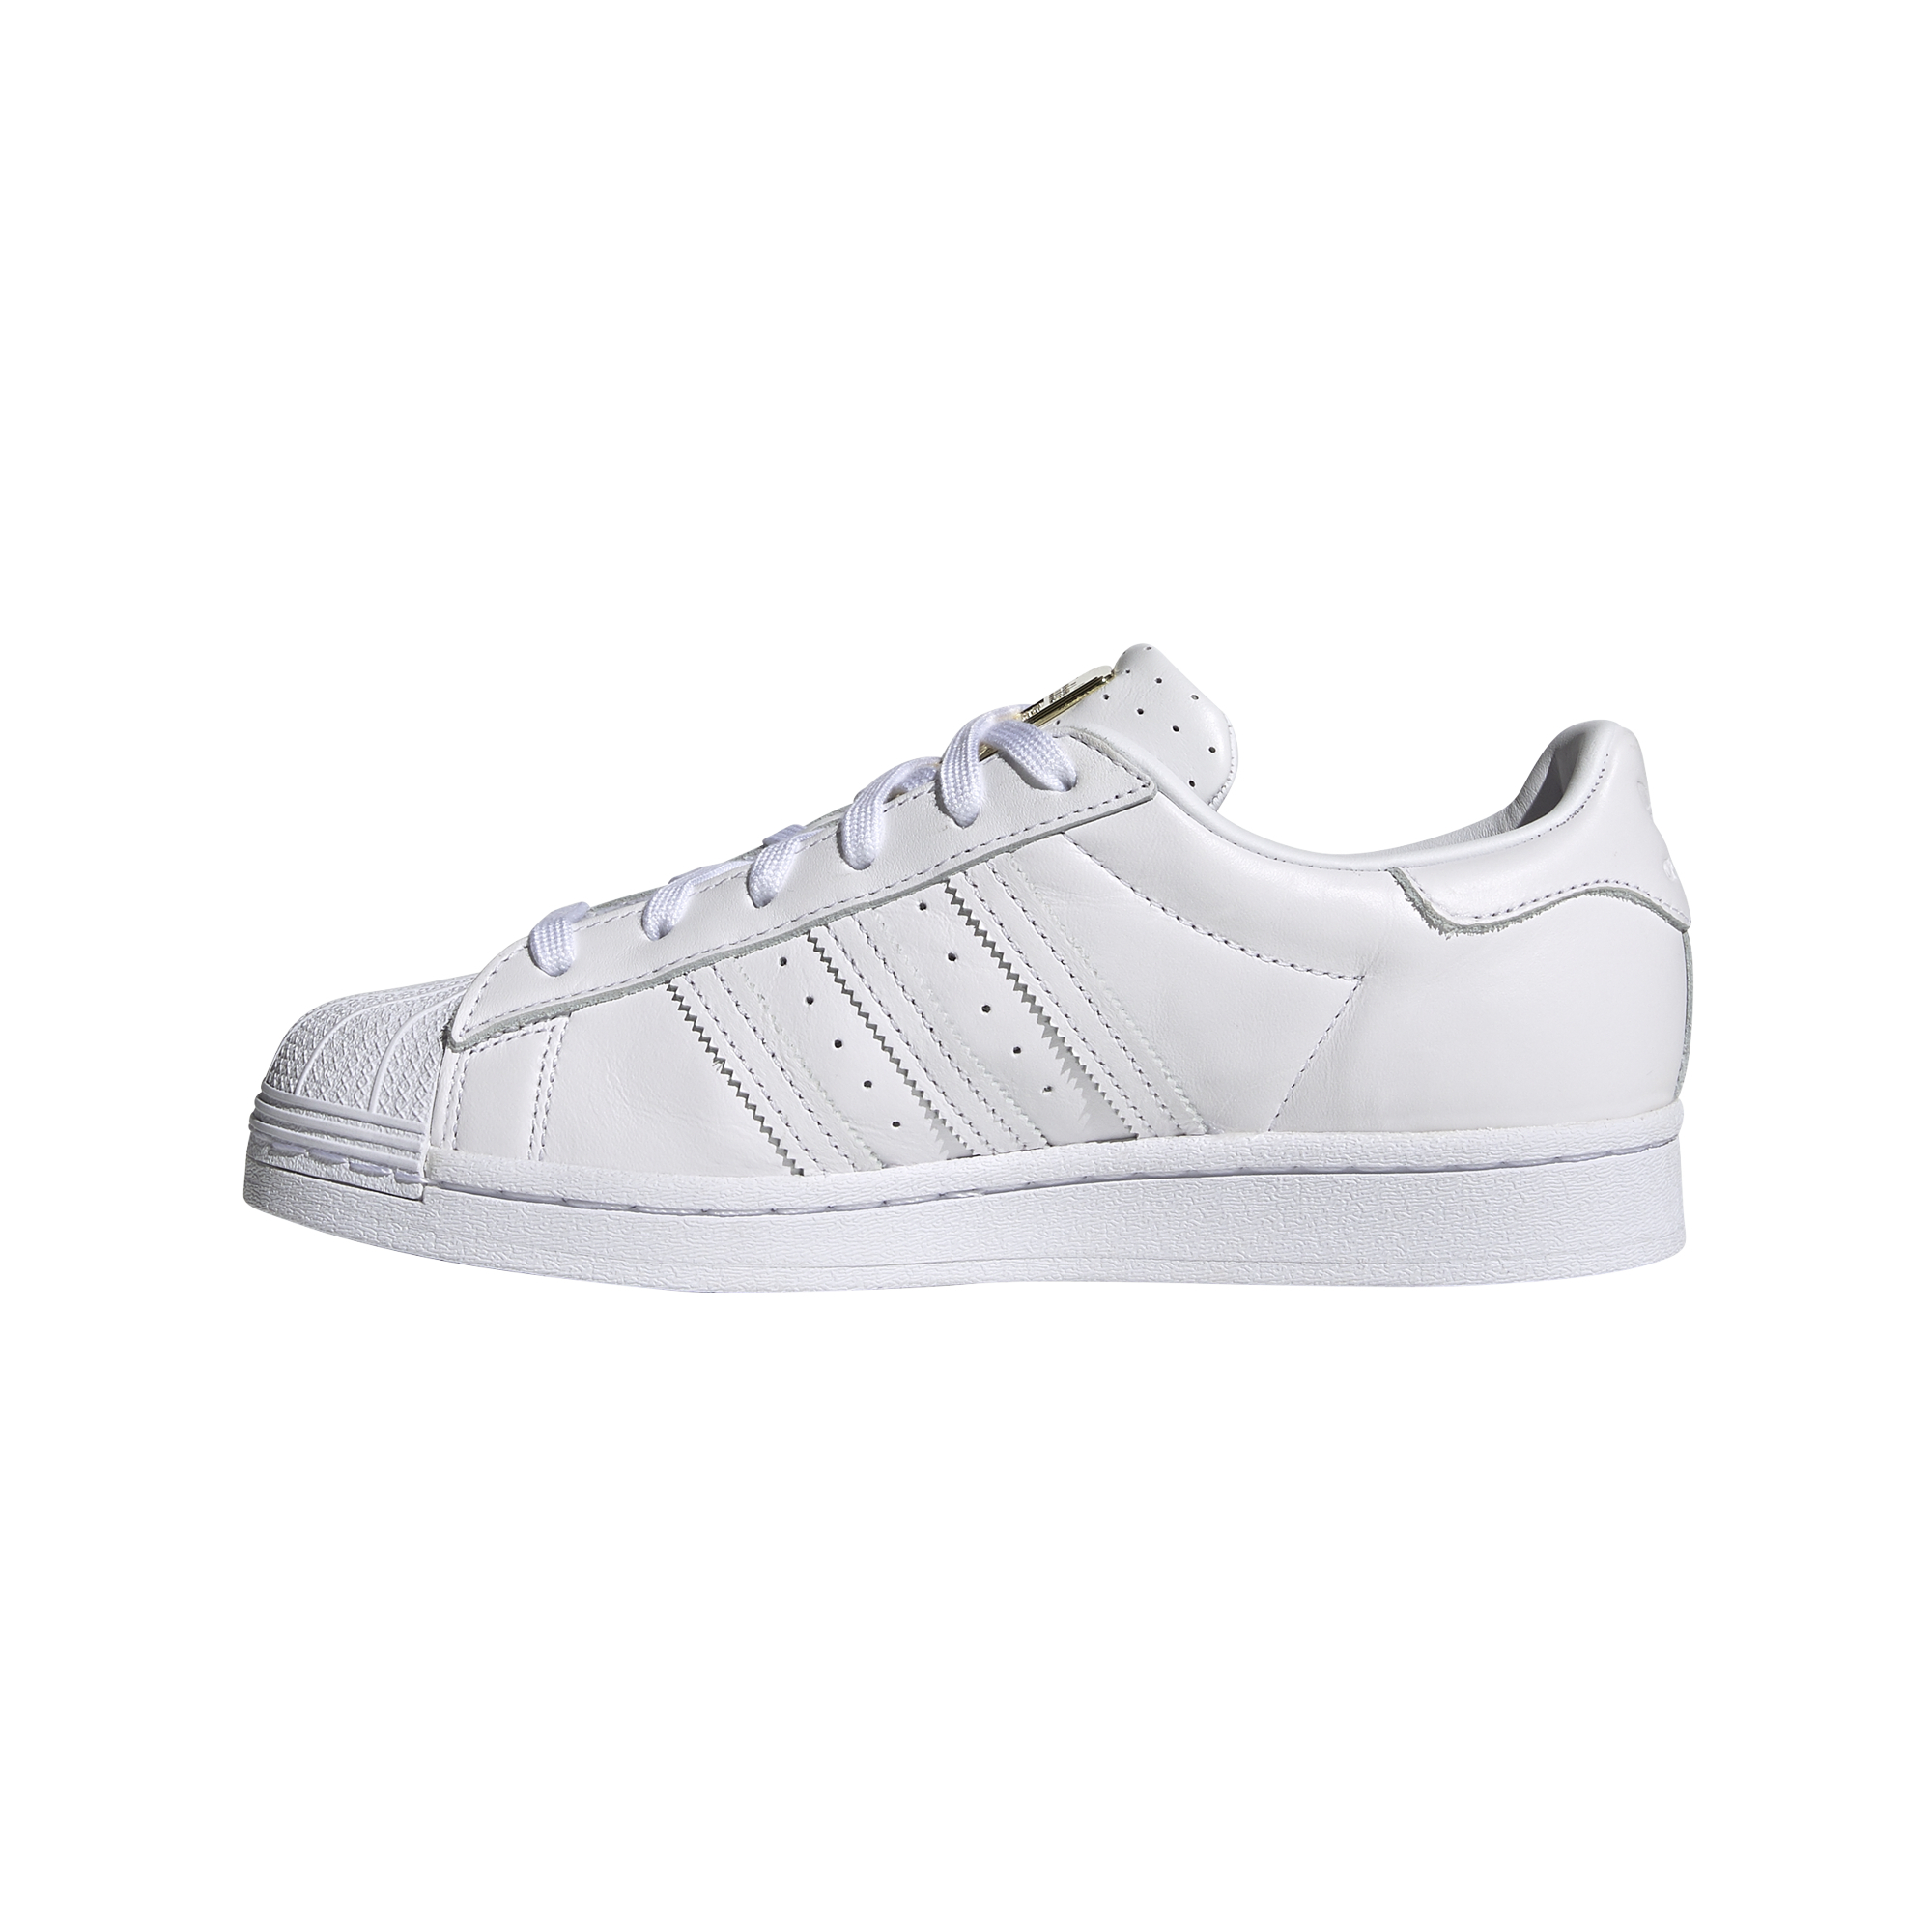 adidas Superstar W Ftw White/ Ftw White/ Gold Metalic EUR 38